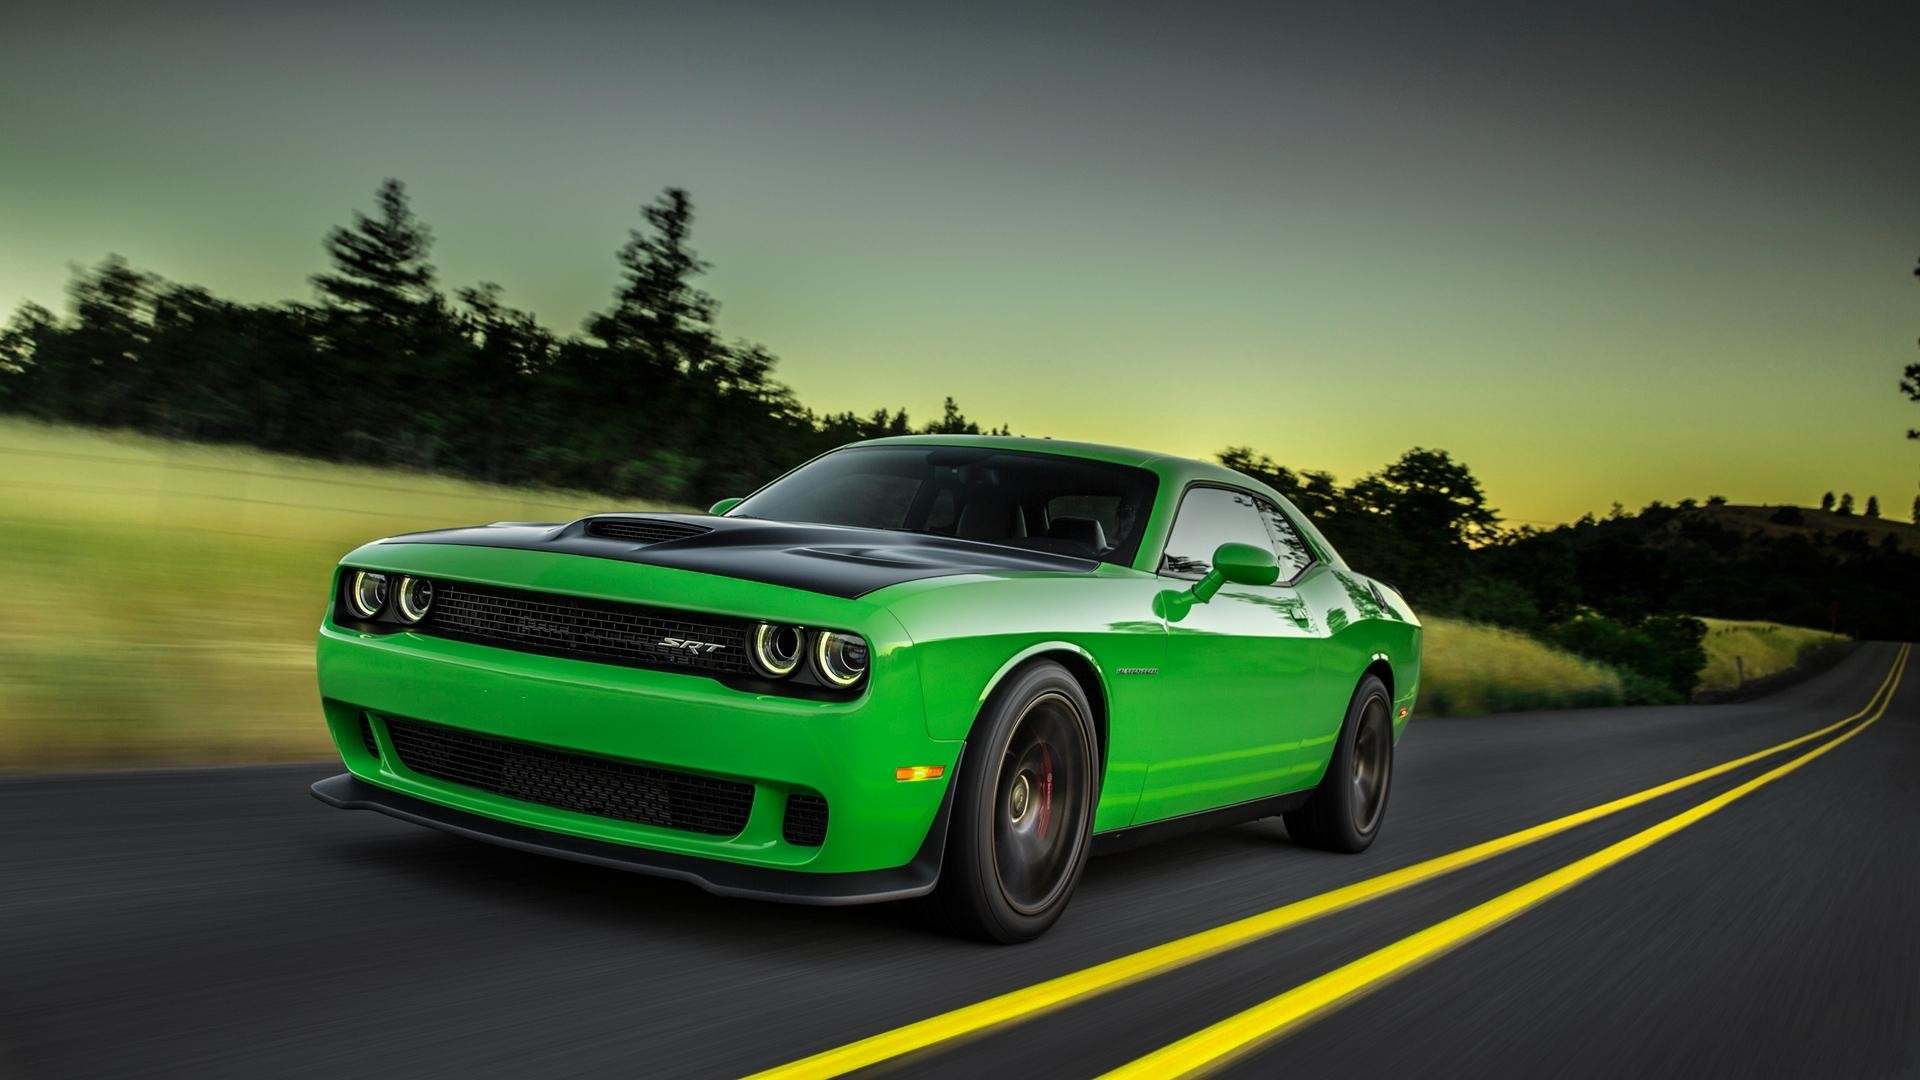 wallpaper.wiki-HD-Dodge-Challenger-Images-PIC-WPD008740